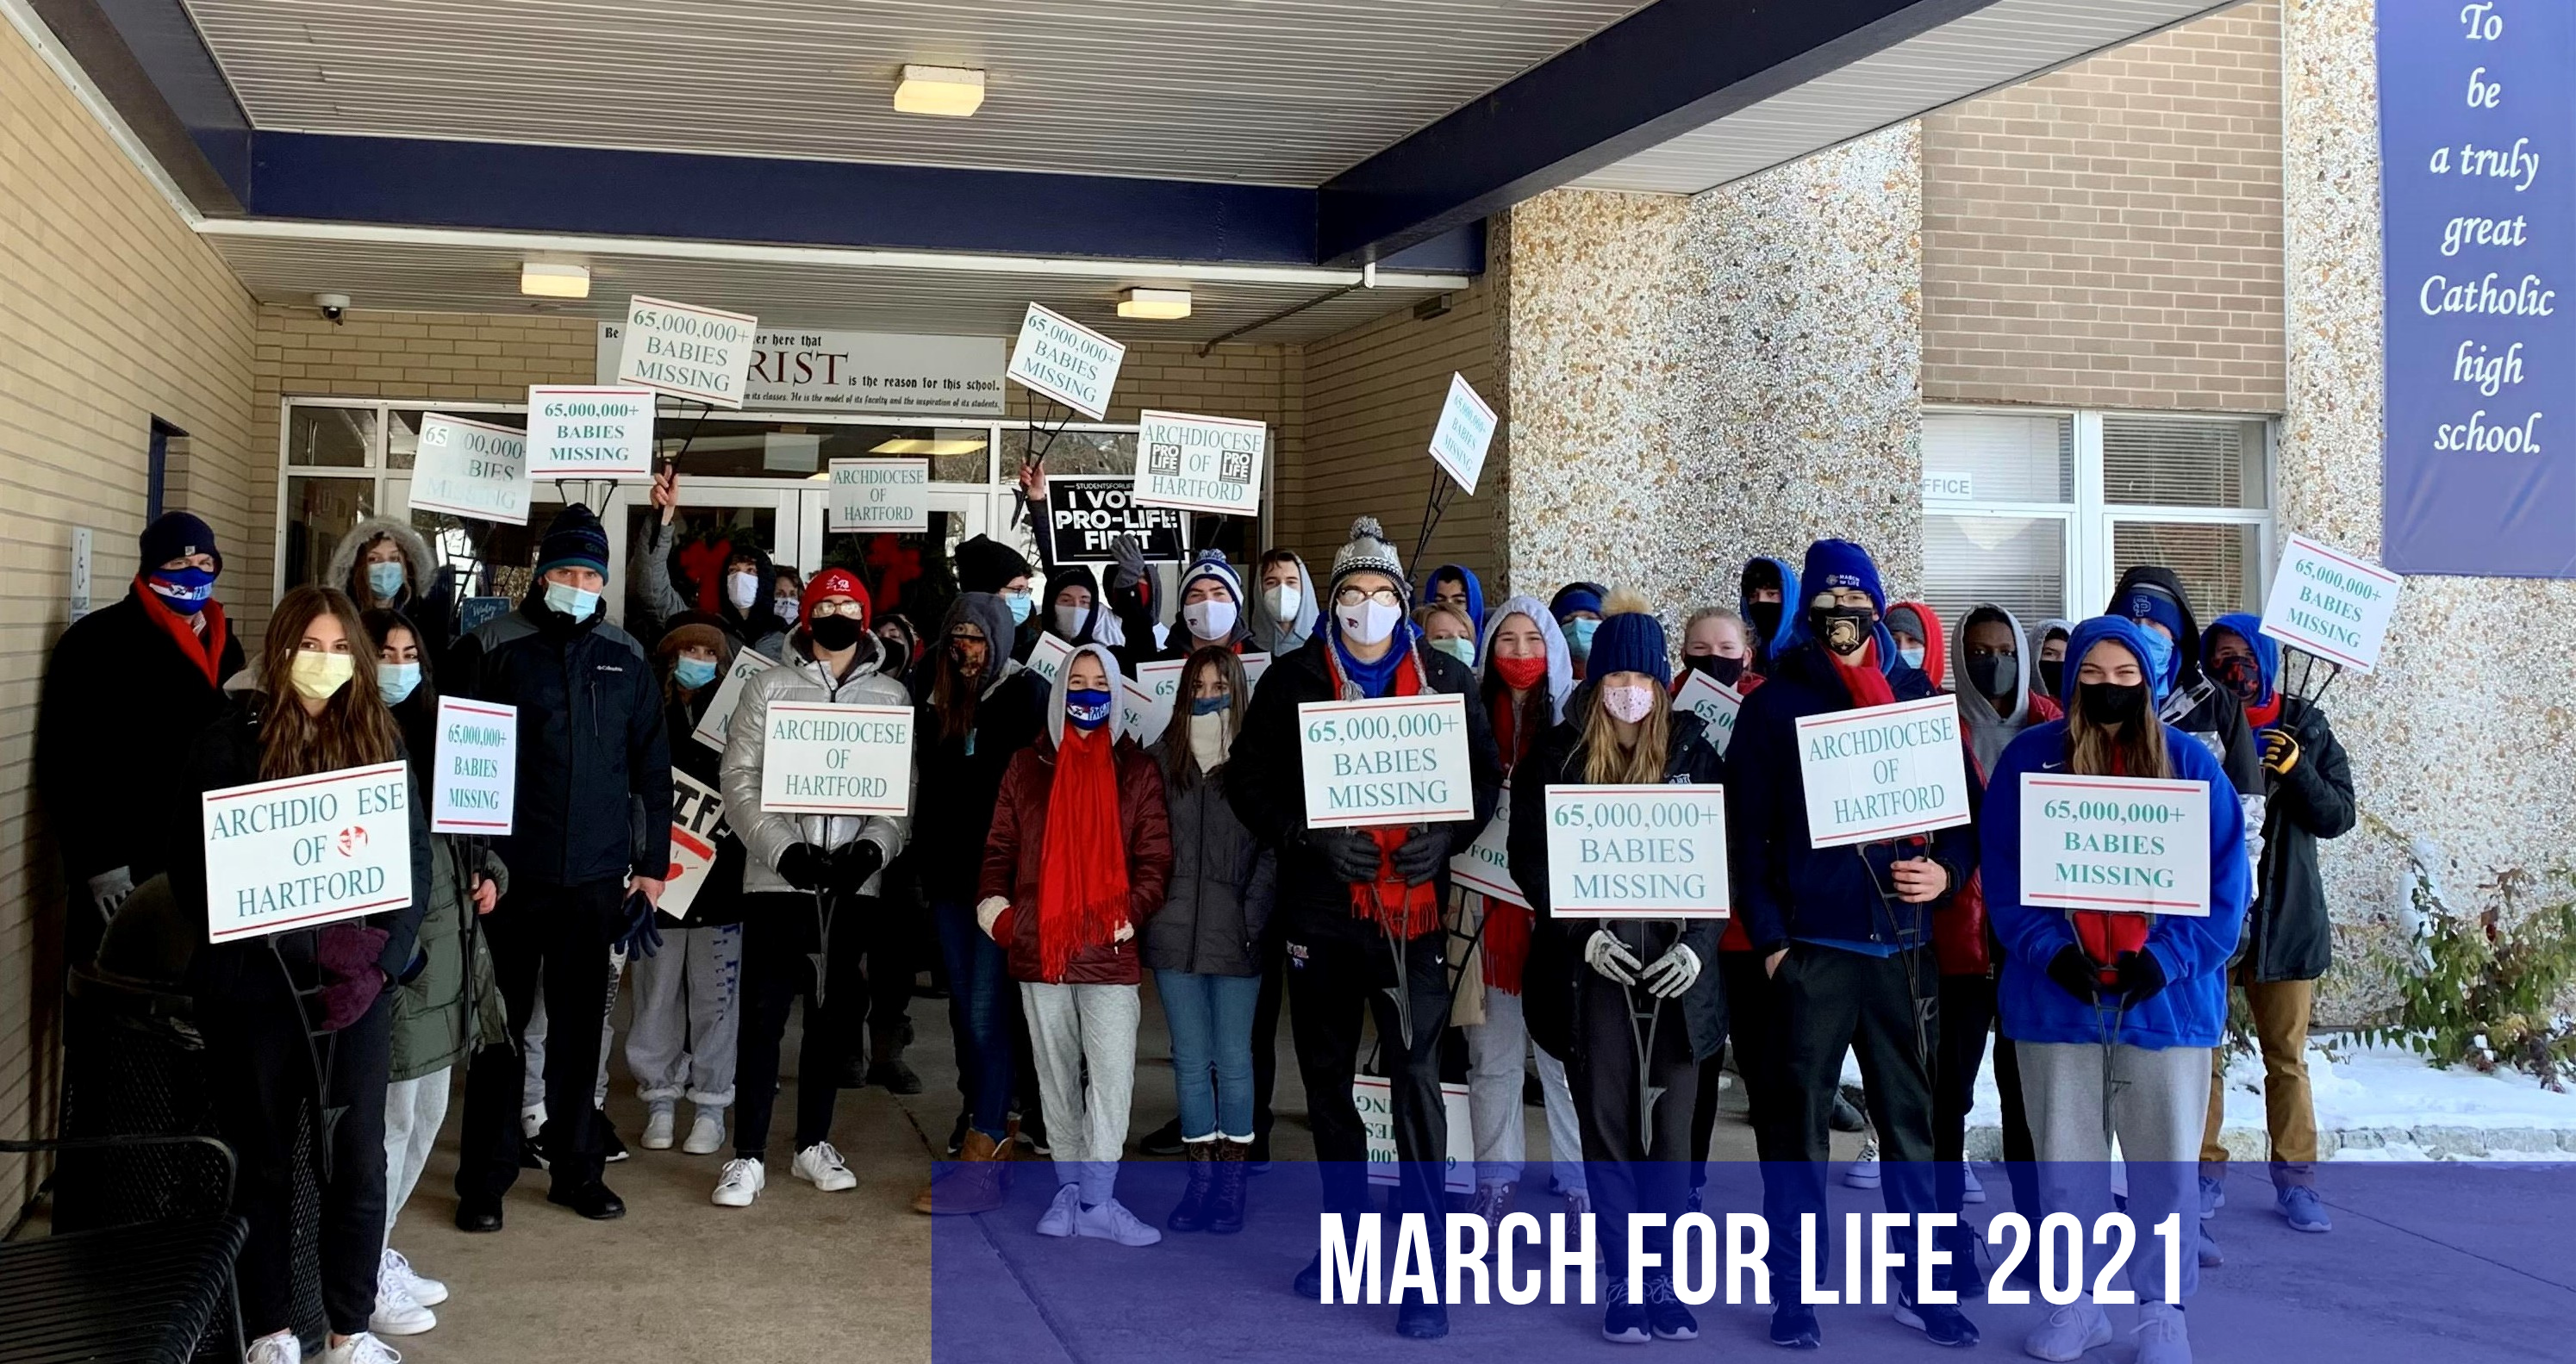 march-for-life-2021